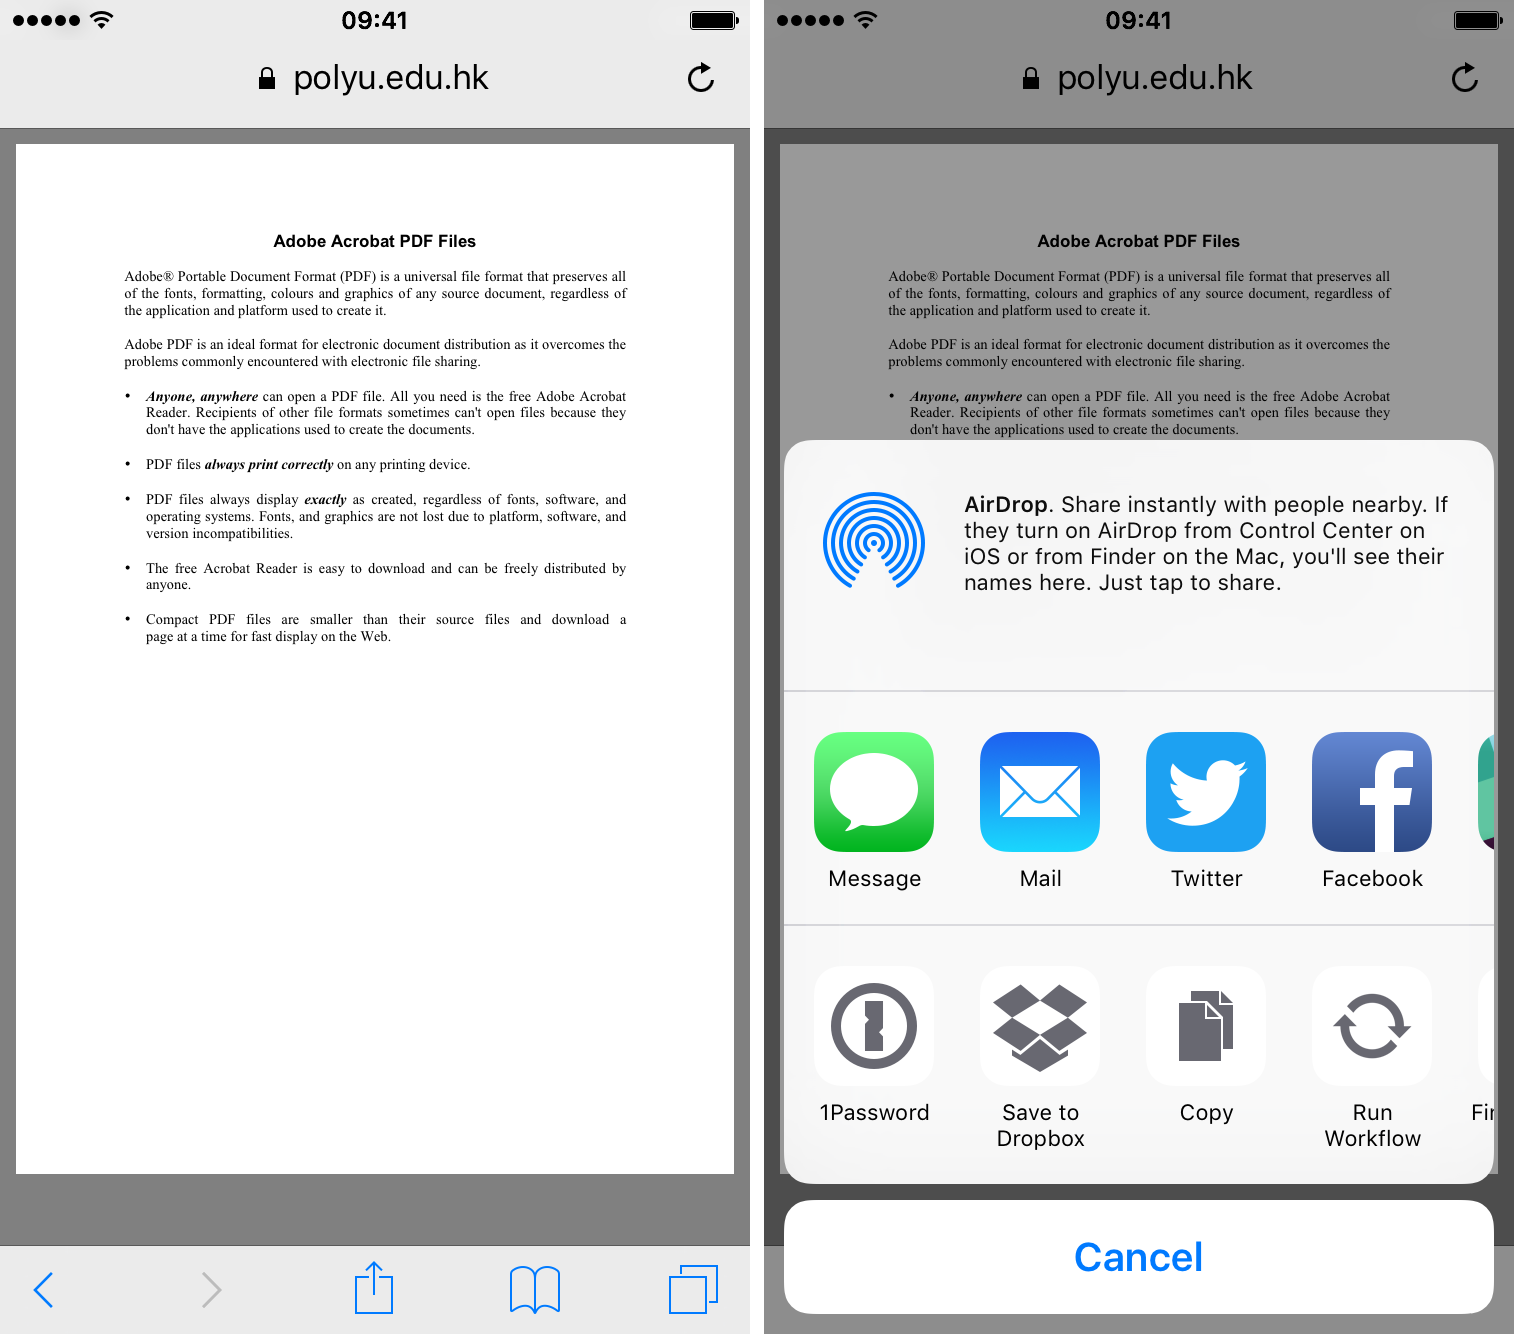 How to download files and documents to iPhone or iPad